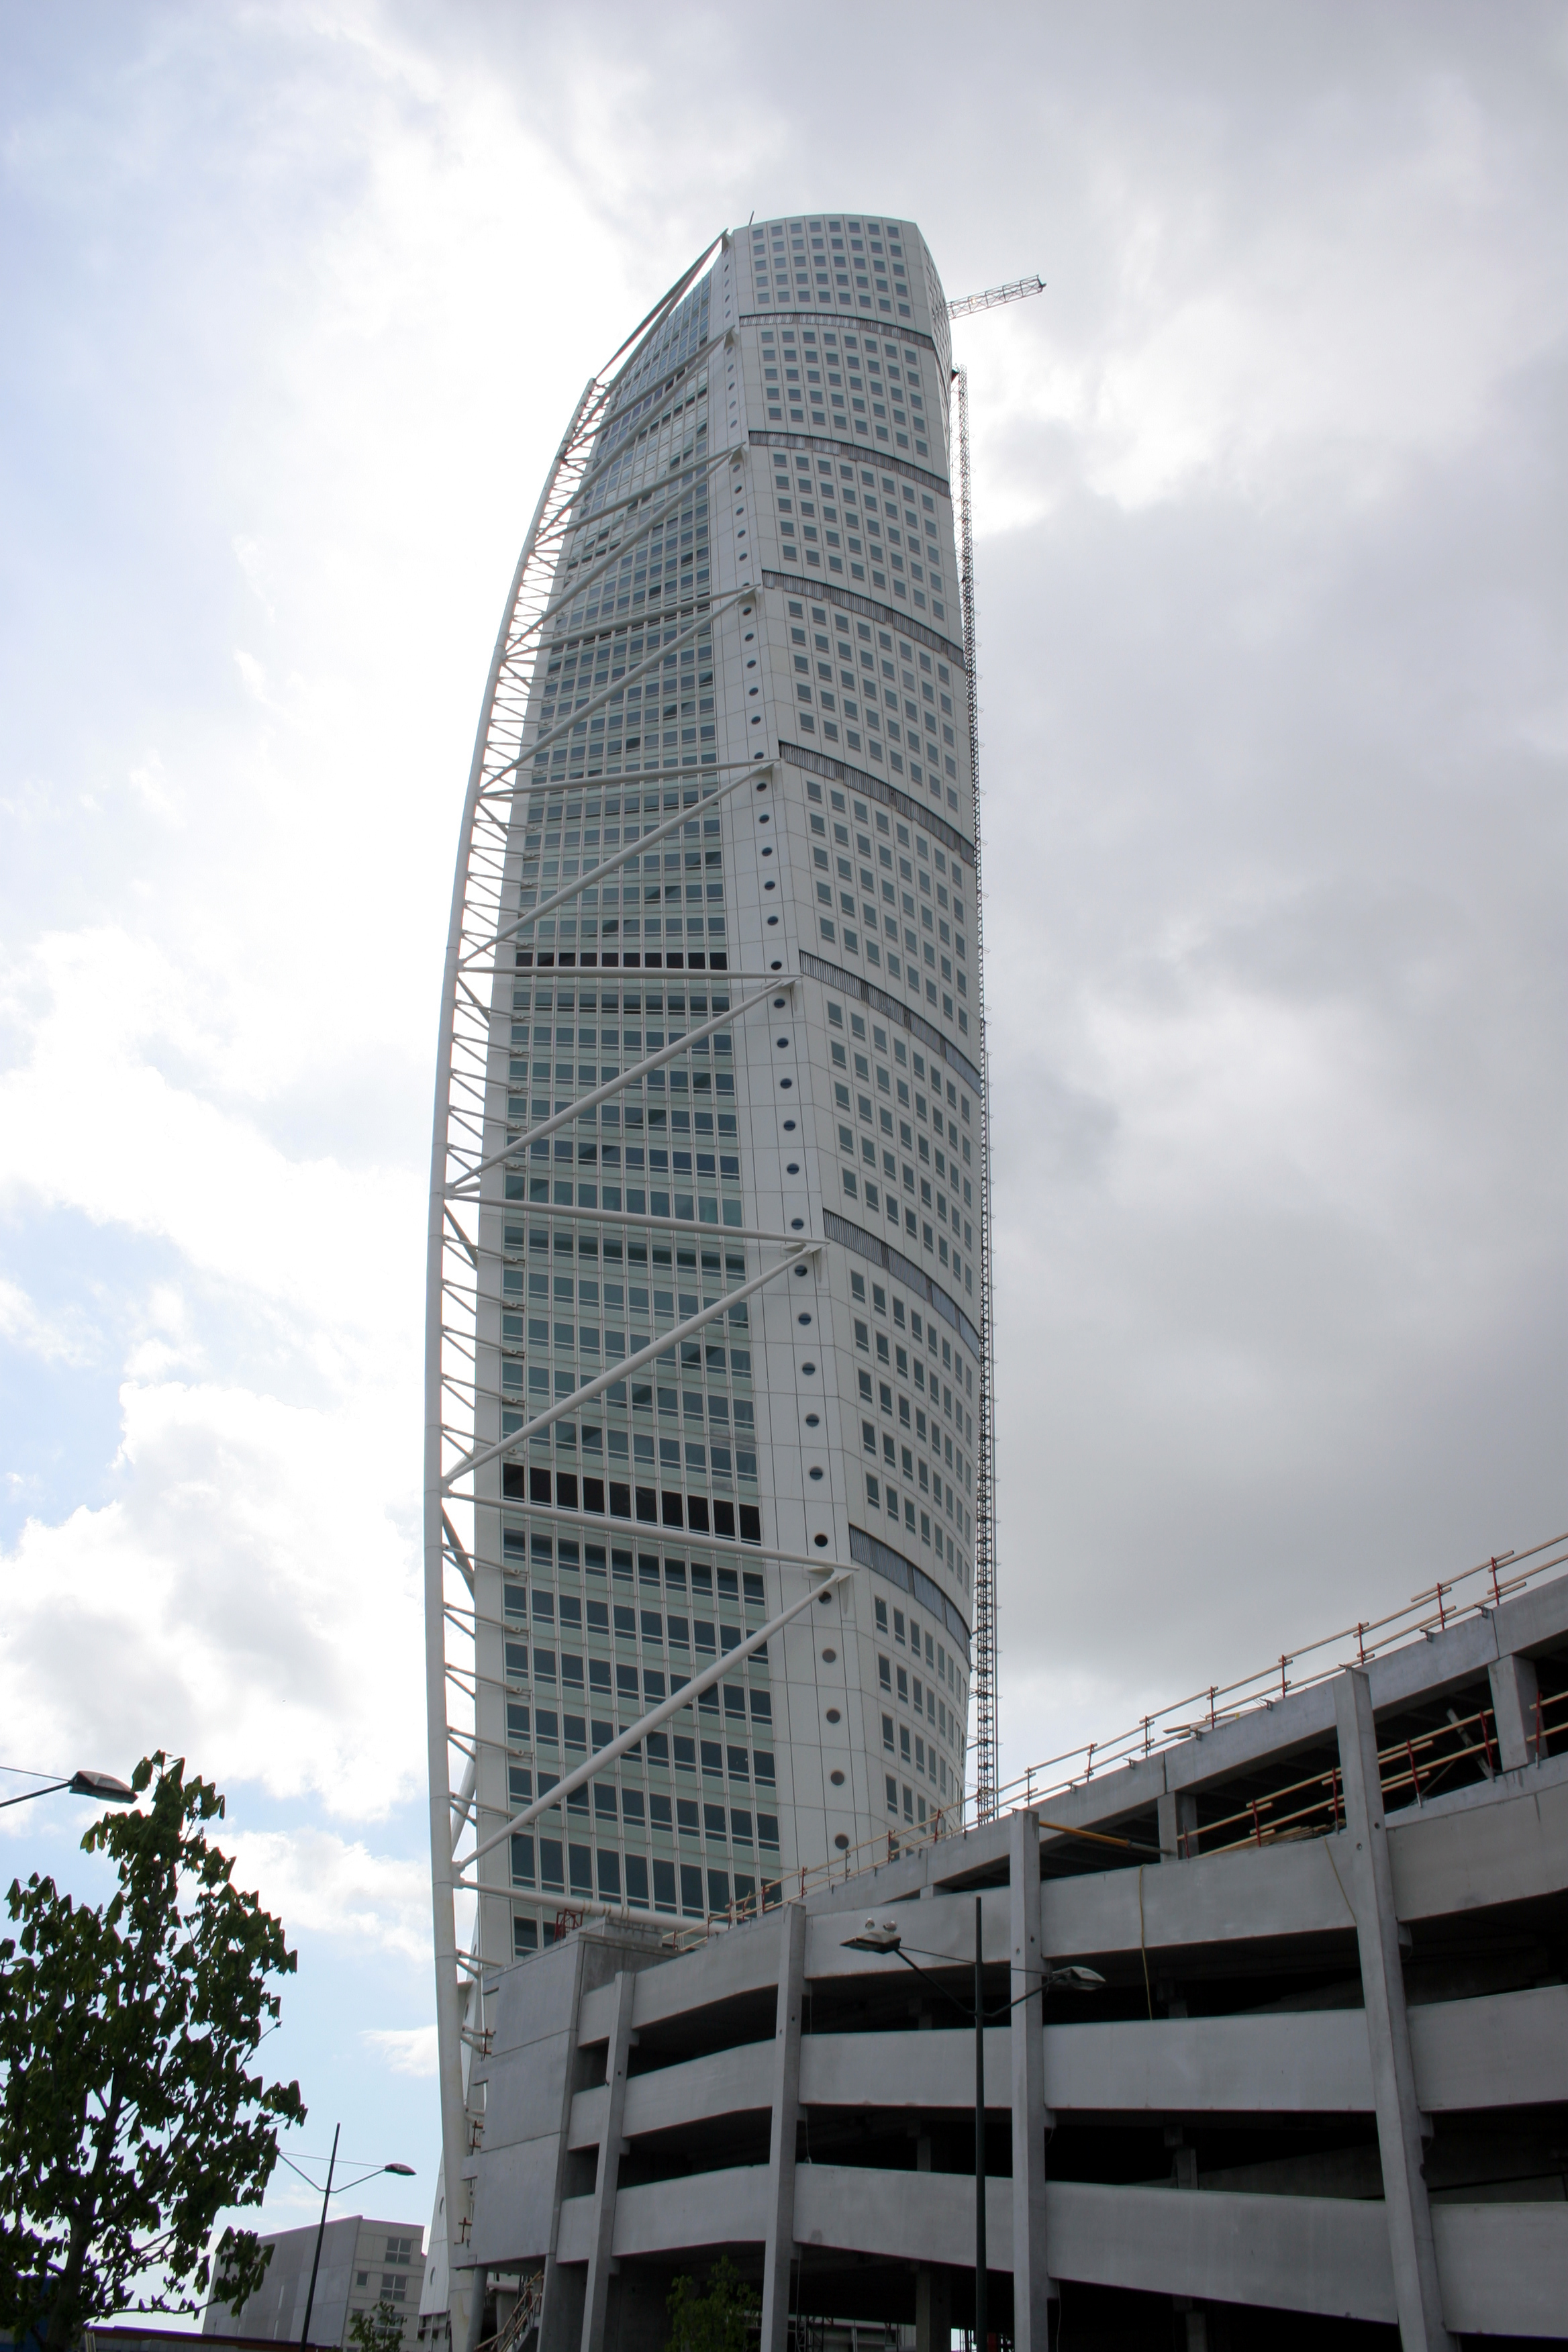 File:Turning Torso Malmo Sweden Pictures Gallery